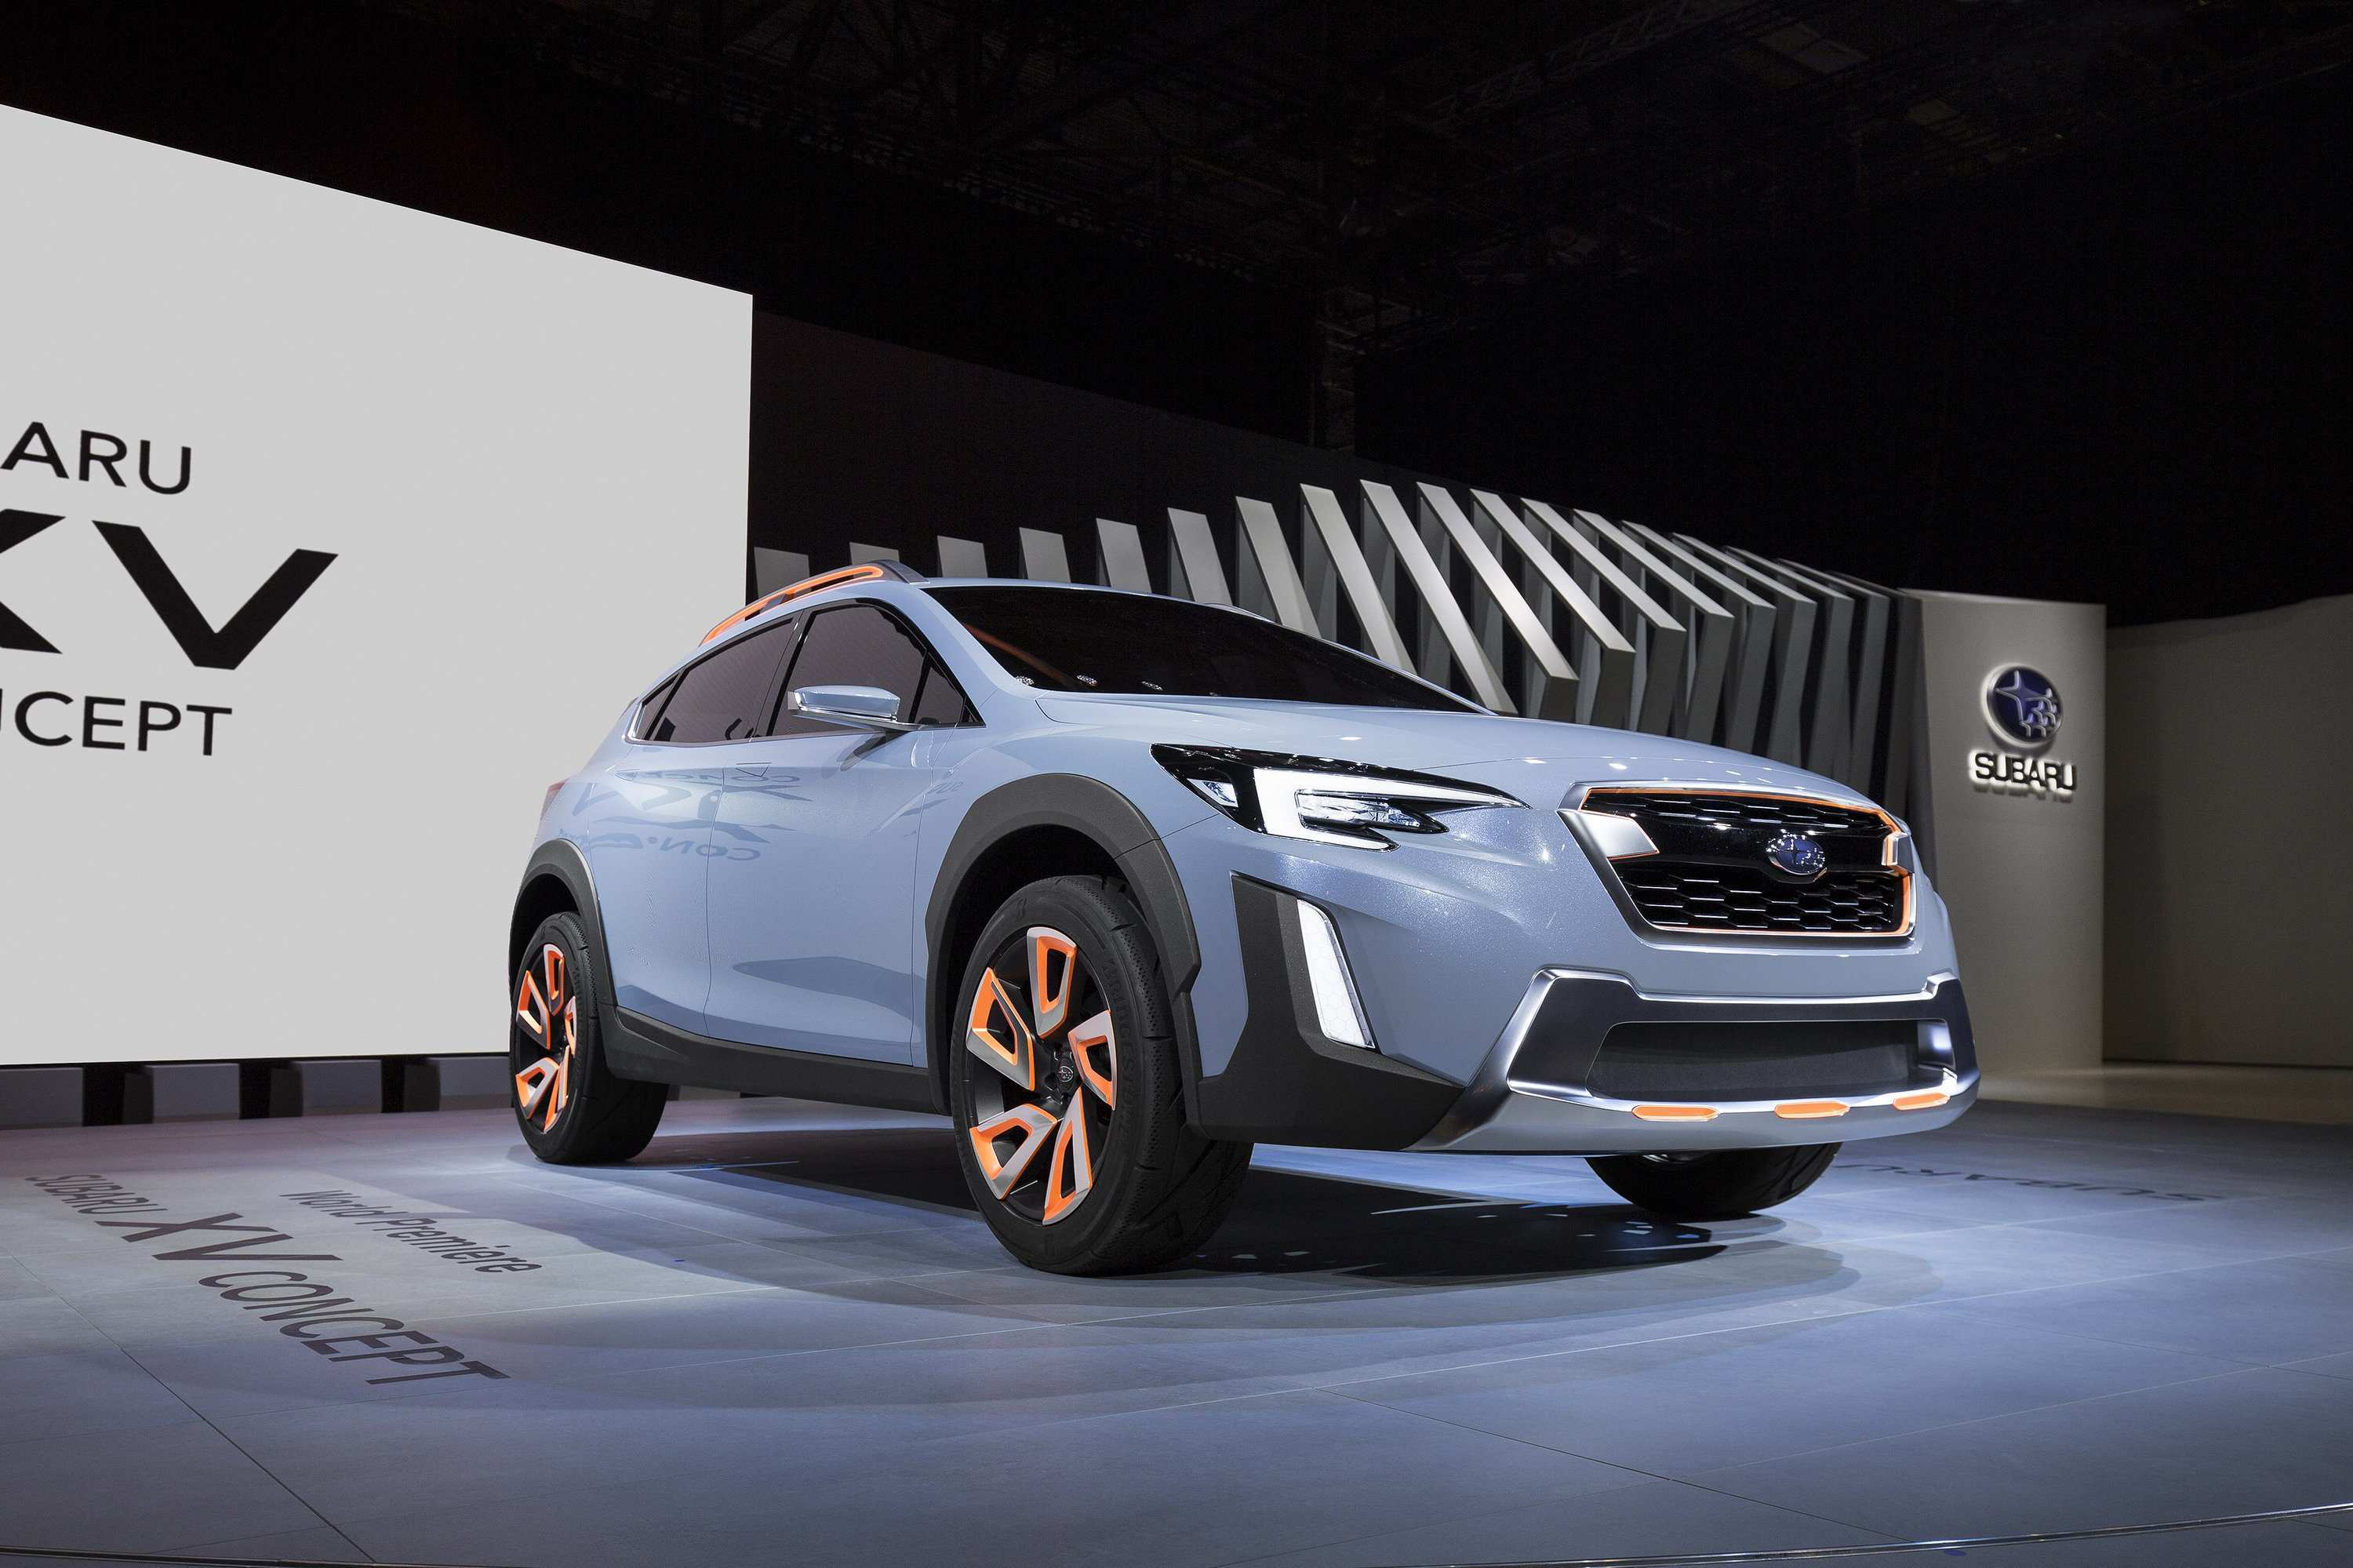 33 Gallery of Subaru Xv 2020 New Concept Images for Subaru Xv 2020 New Concept